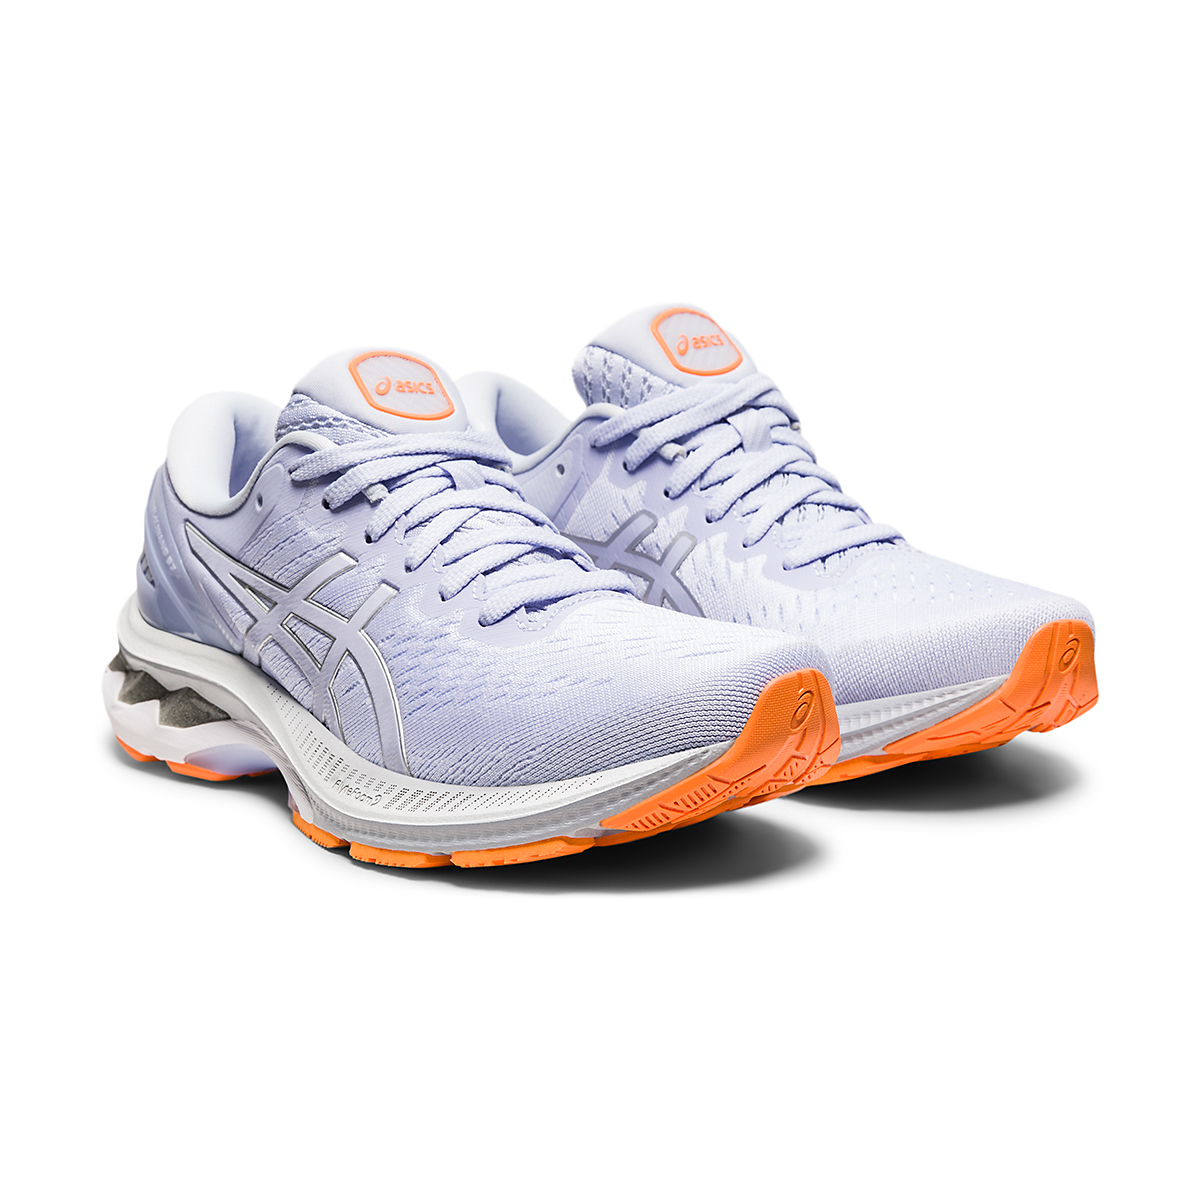 Women's Asics GEL-Kayano 27 Running Shoe - Color: Lilac Opal/Pure Silver - Size: 6 - Width: Regular, Lilac Opal/Pure Silver, large, image 3